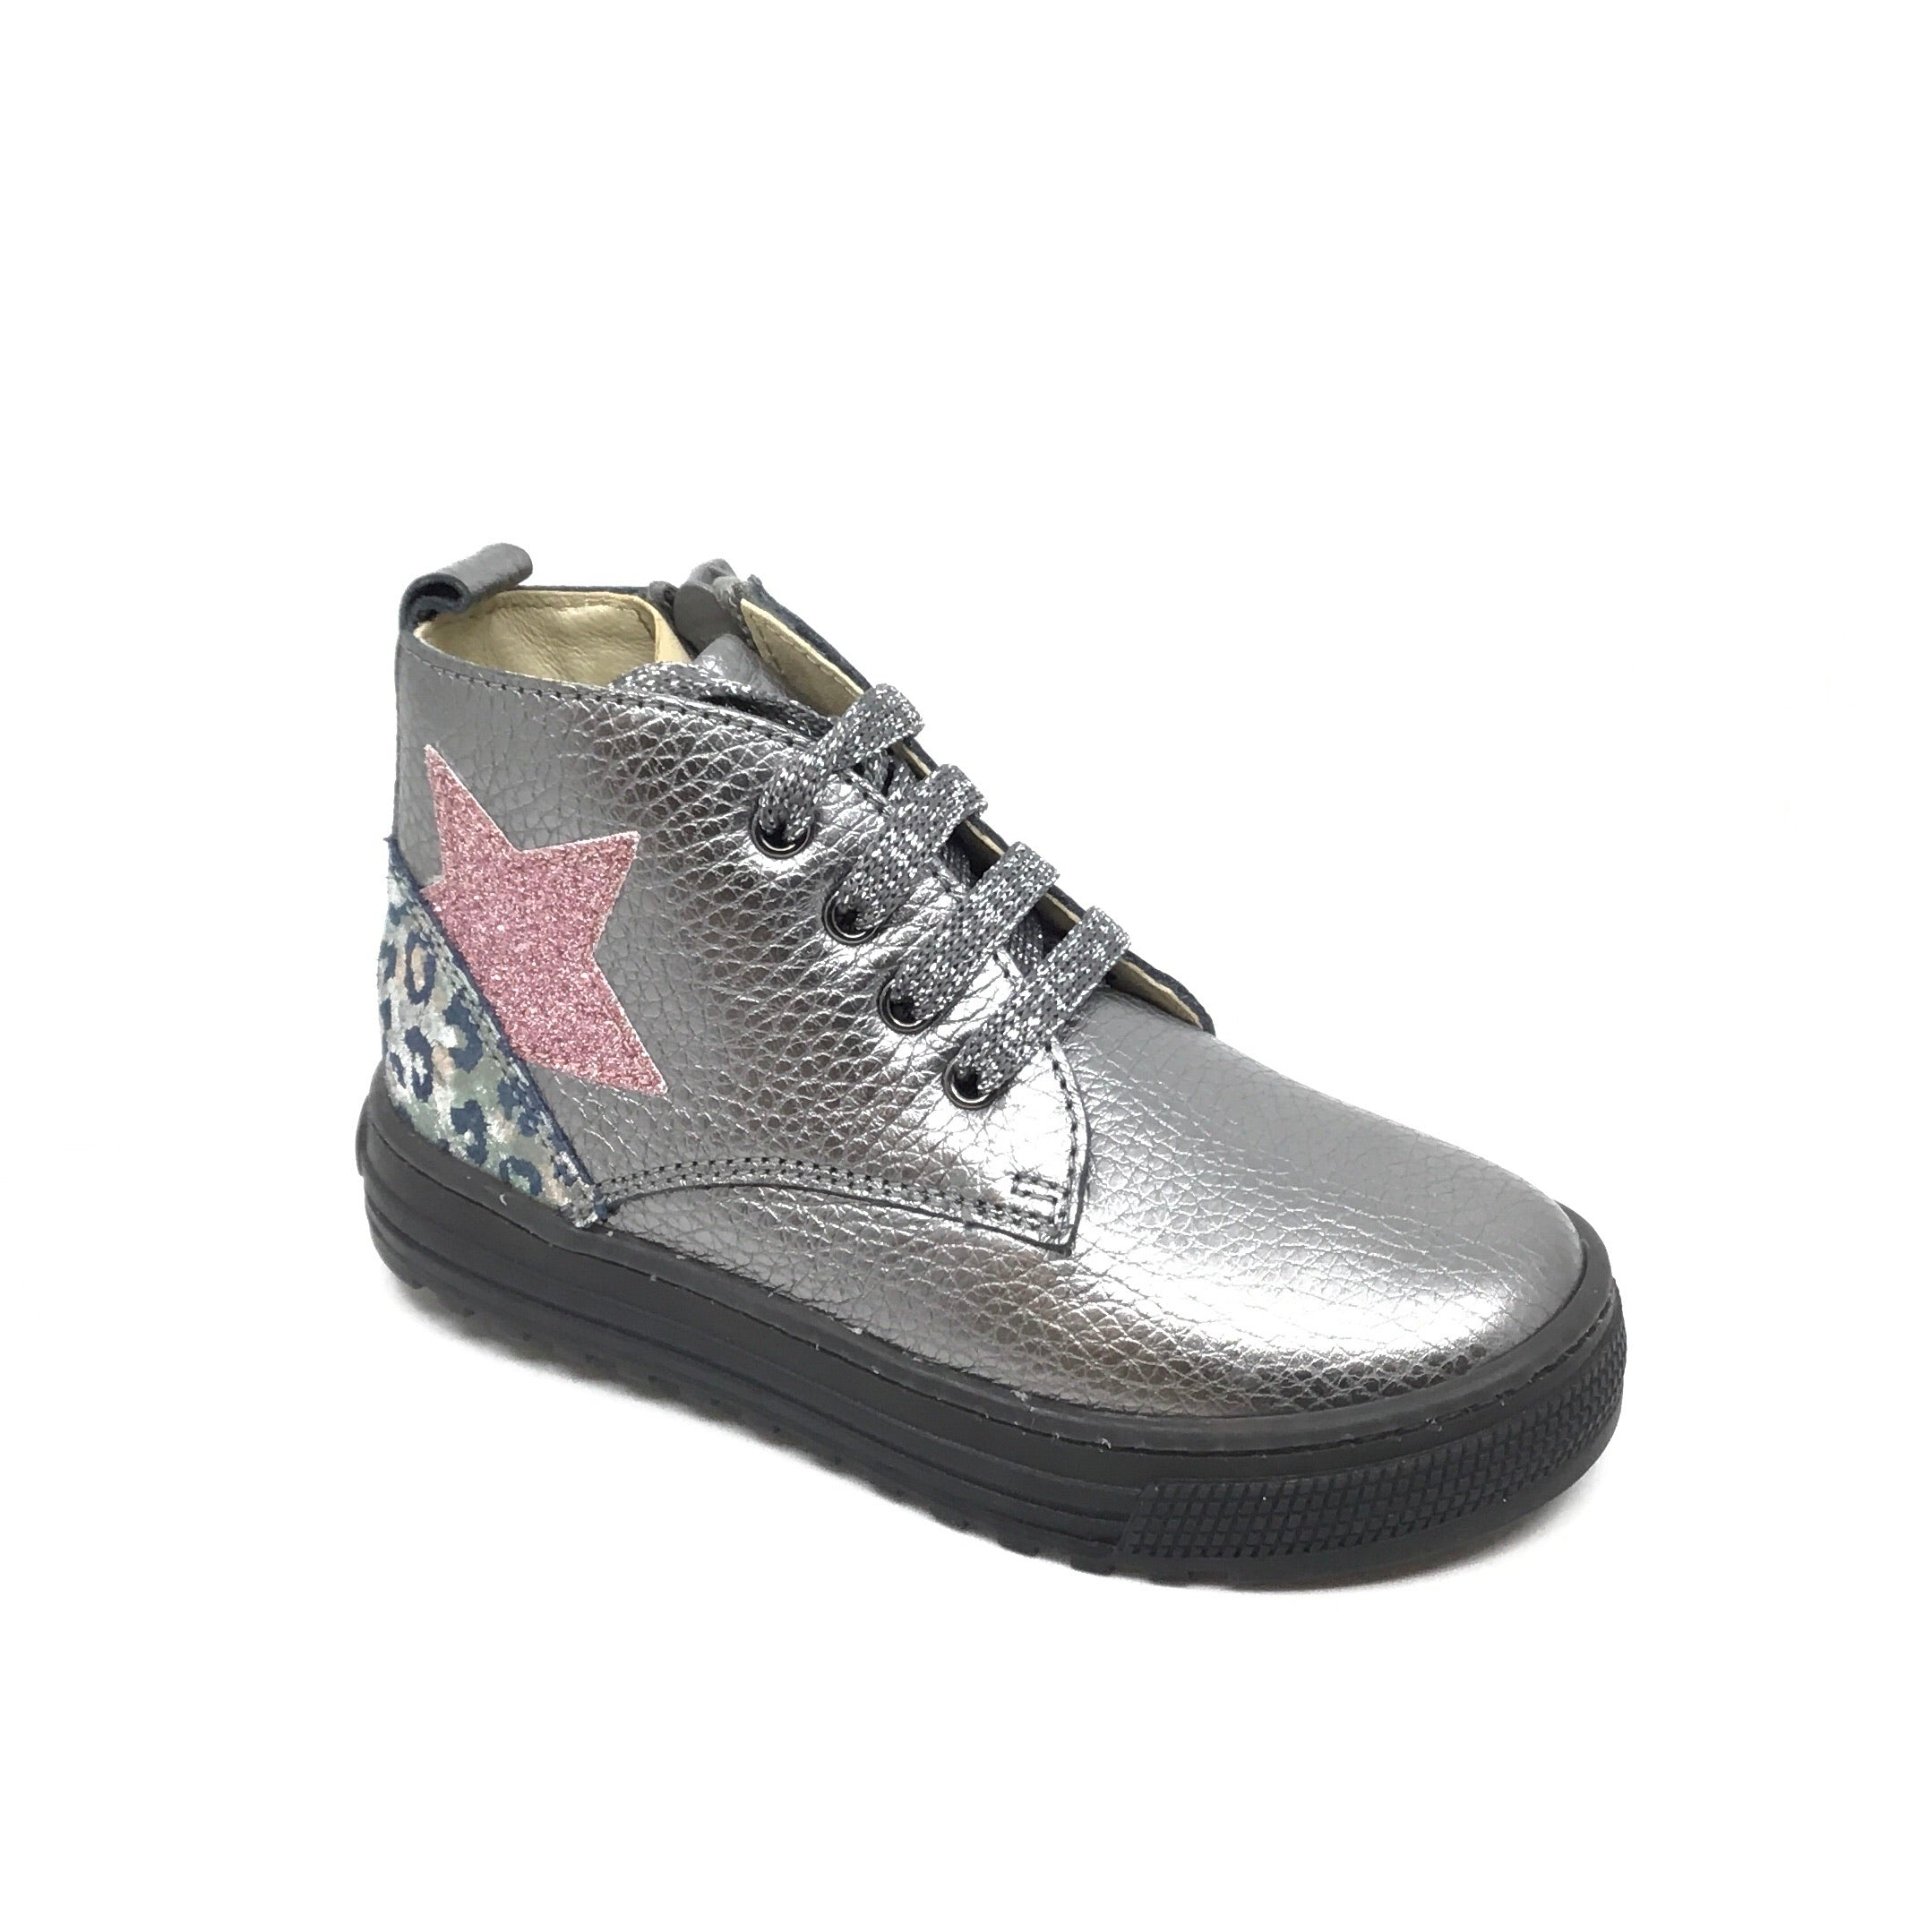 Naturino Silver/Multi Color Hi Top